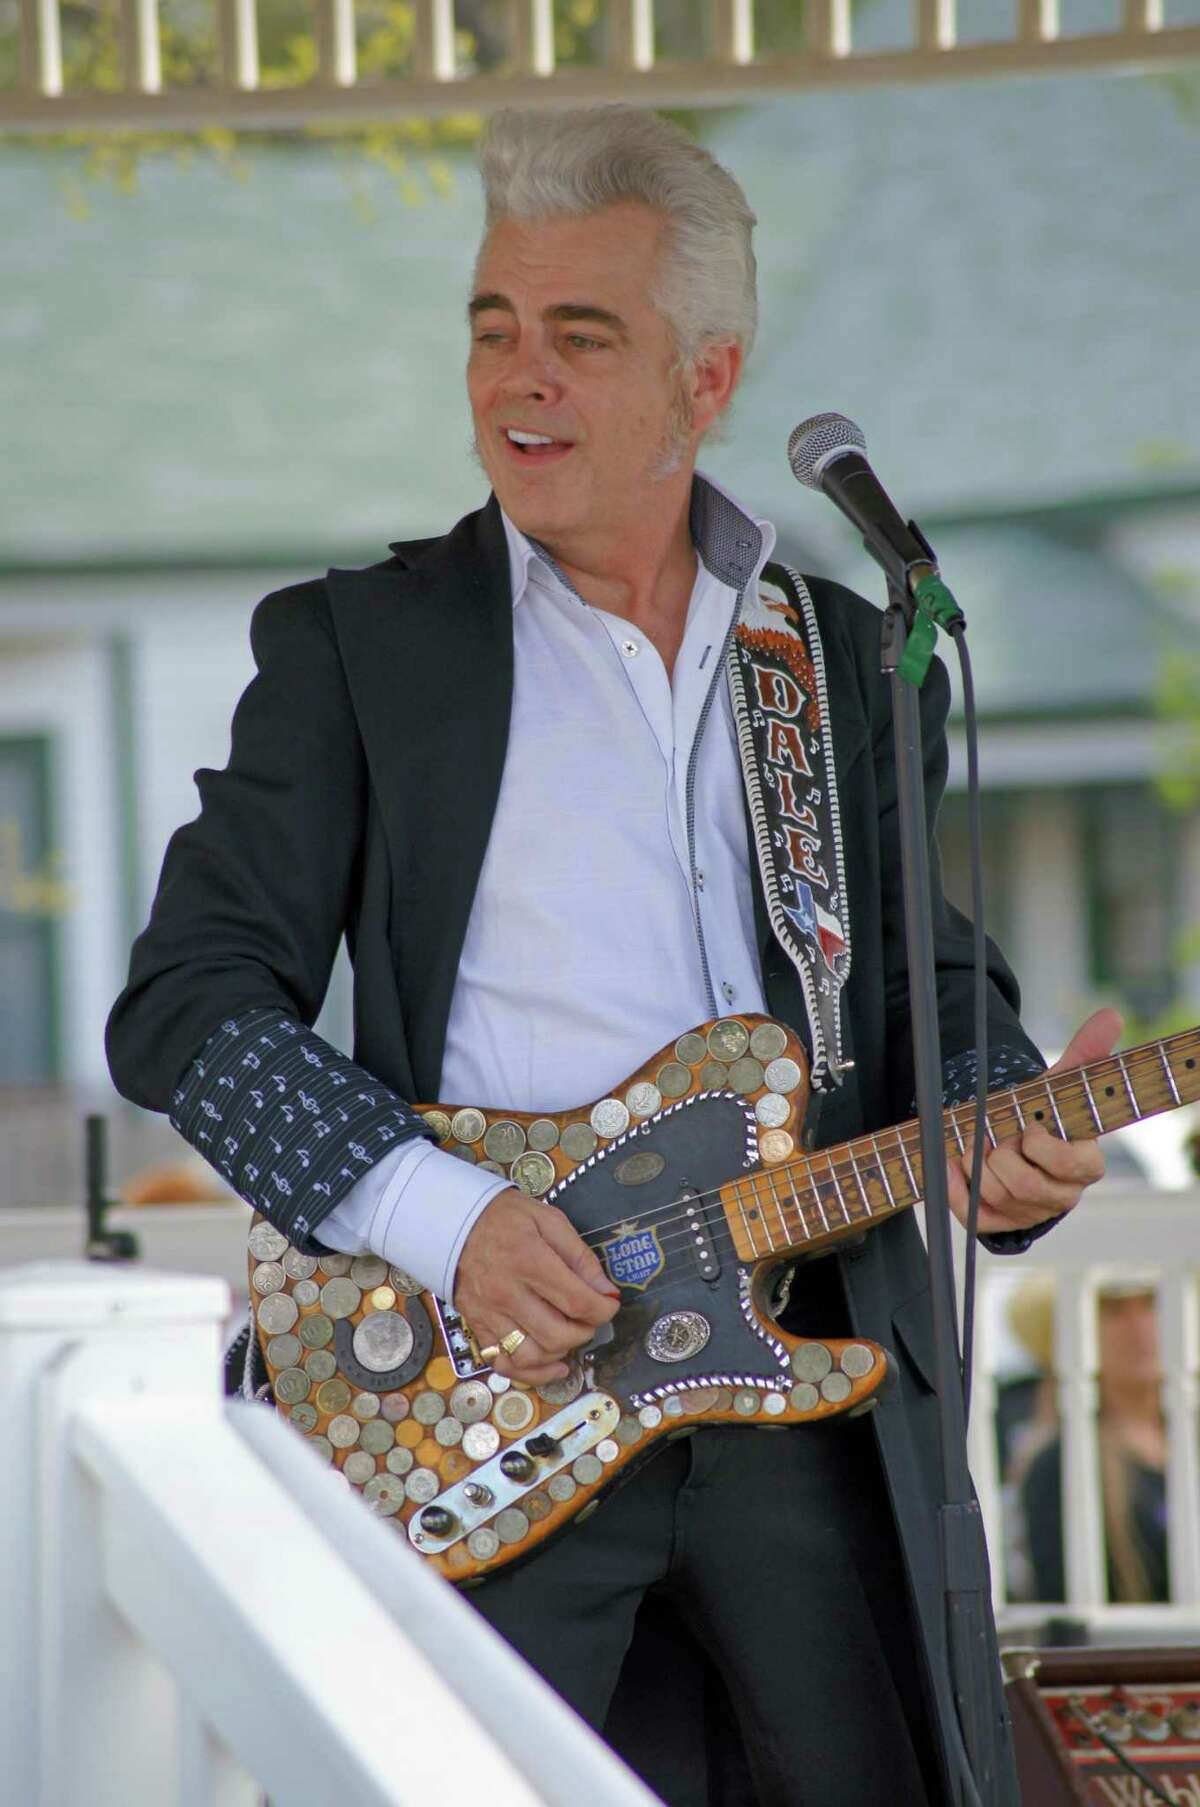 Memphis-based singer-songwriter Dale Watson will perform at Main Street Crossing in Tomball Dec. 27 and 28.